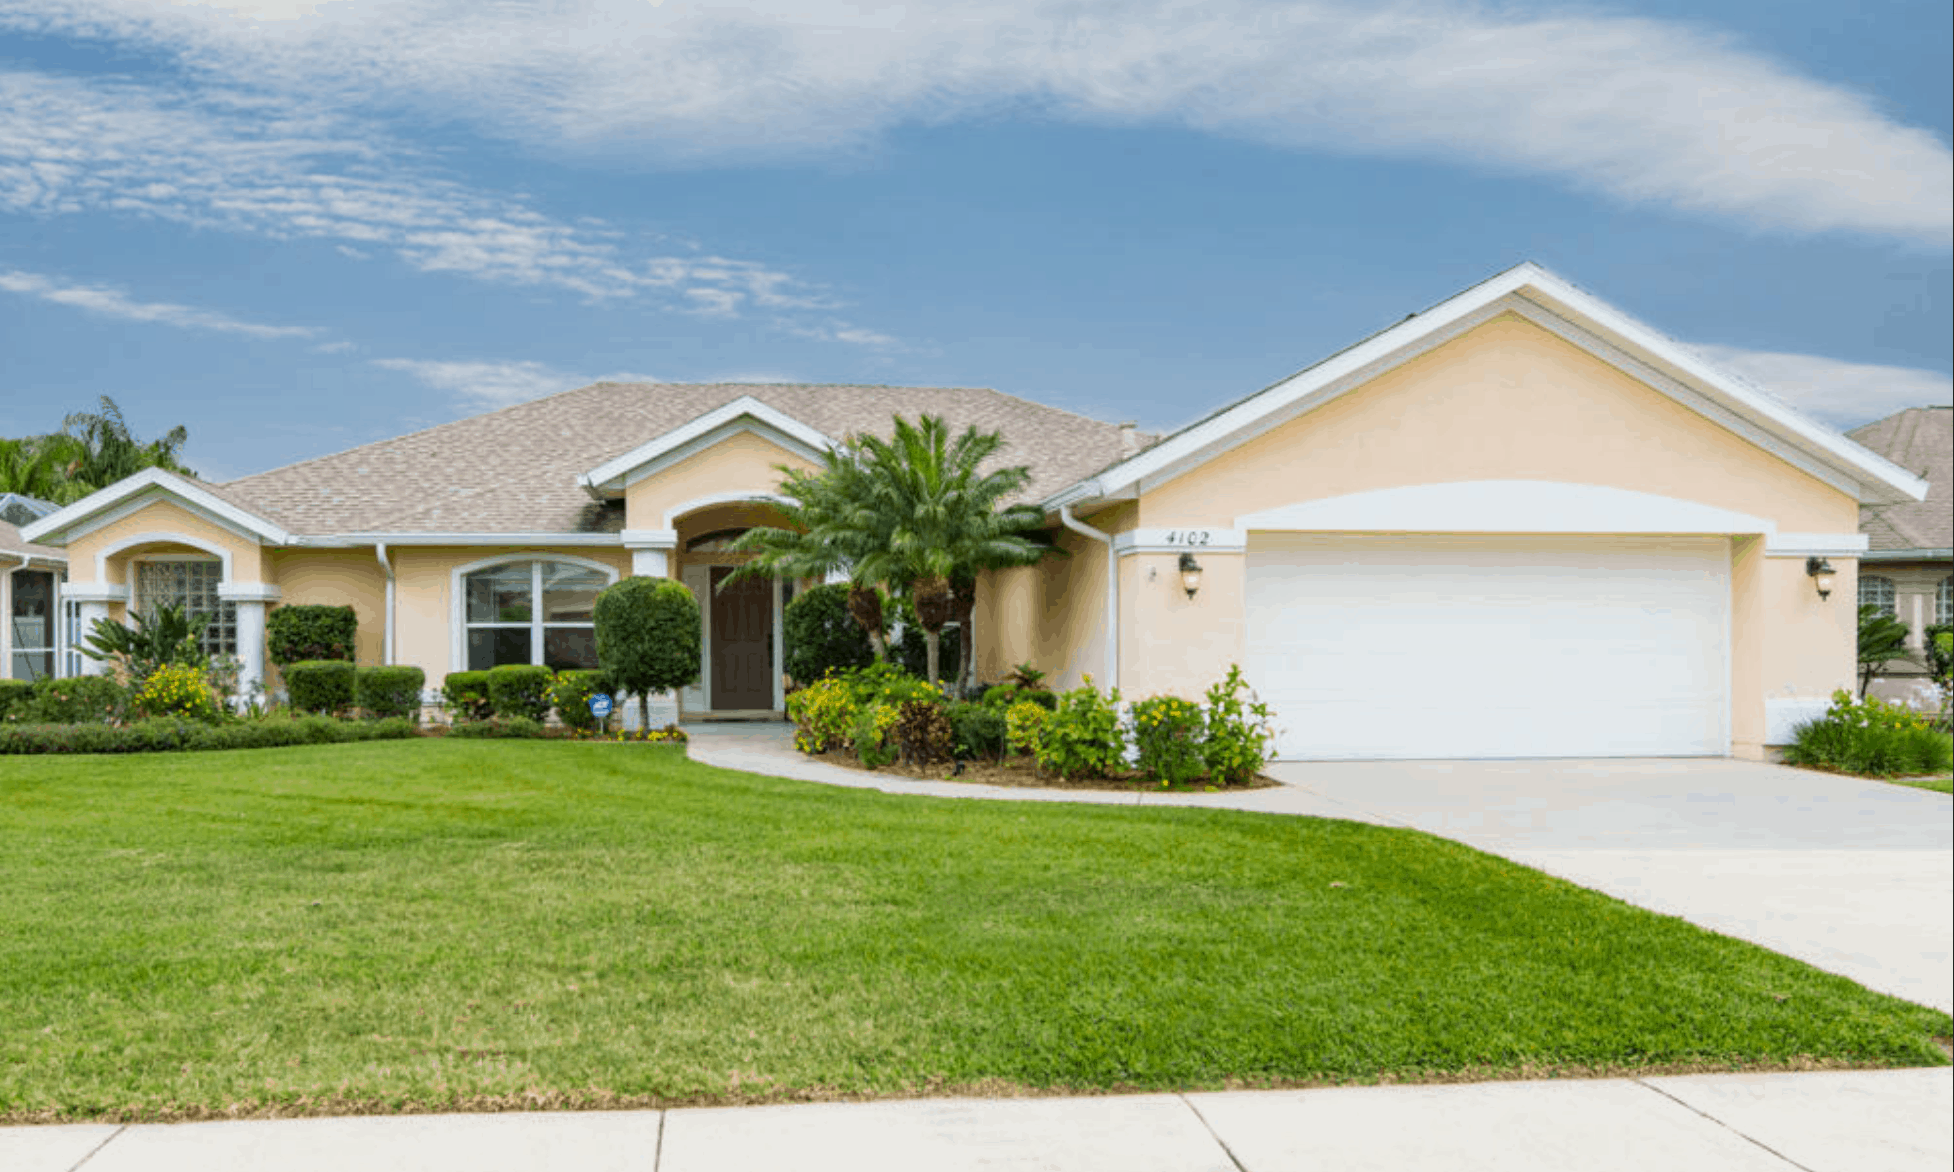 JUST LISTED – 4102 Las Cruces Way, Rockledge, FL 32955 – $294,900